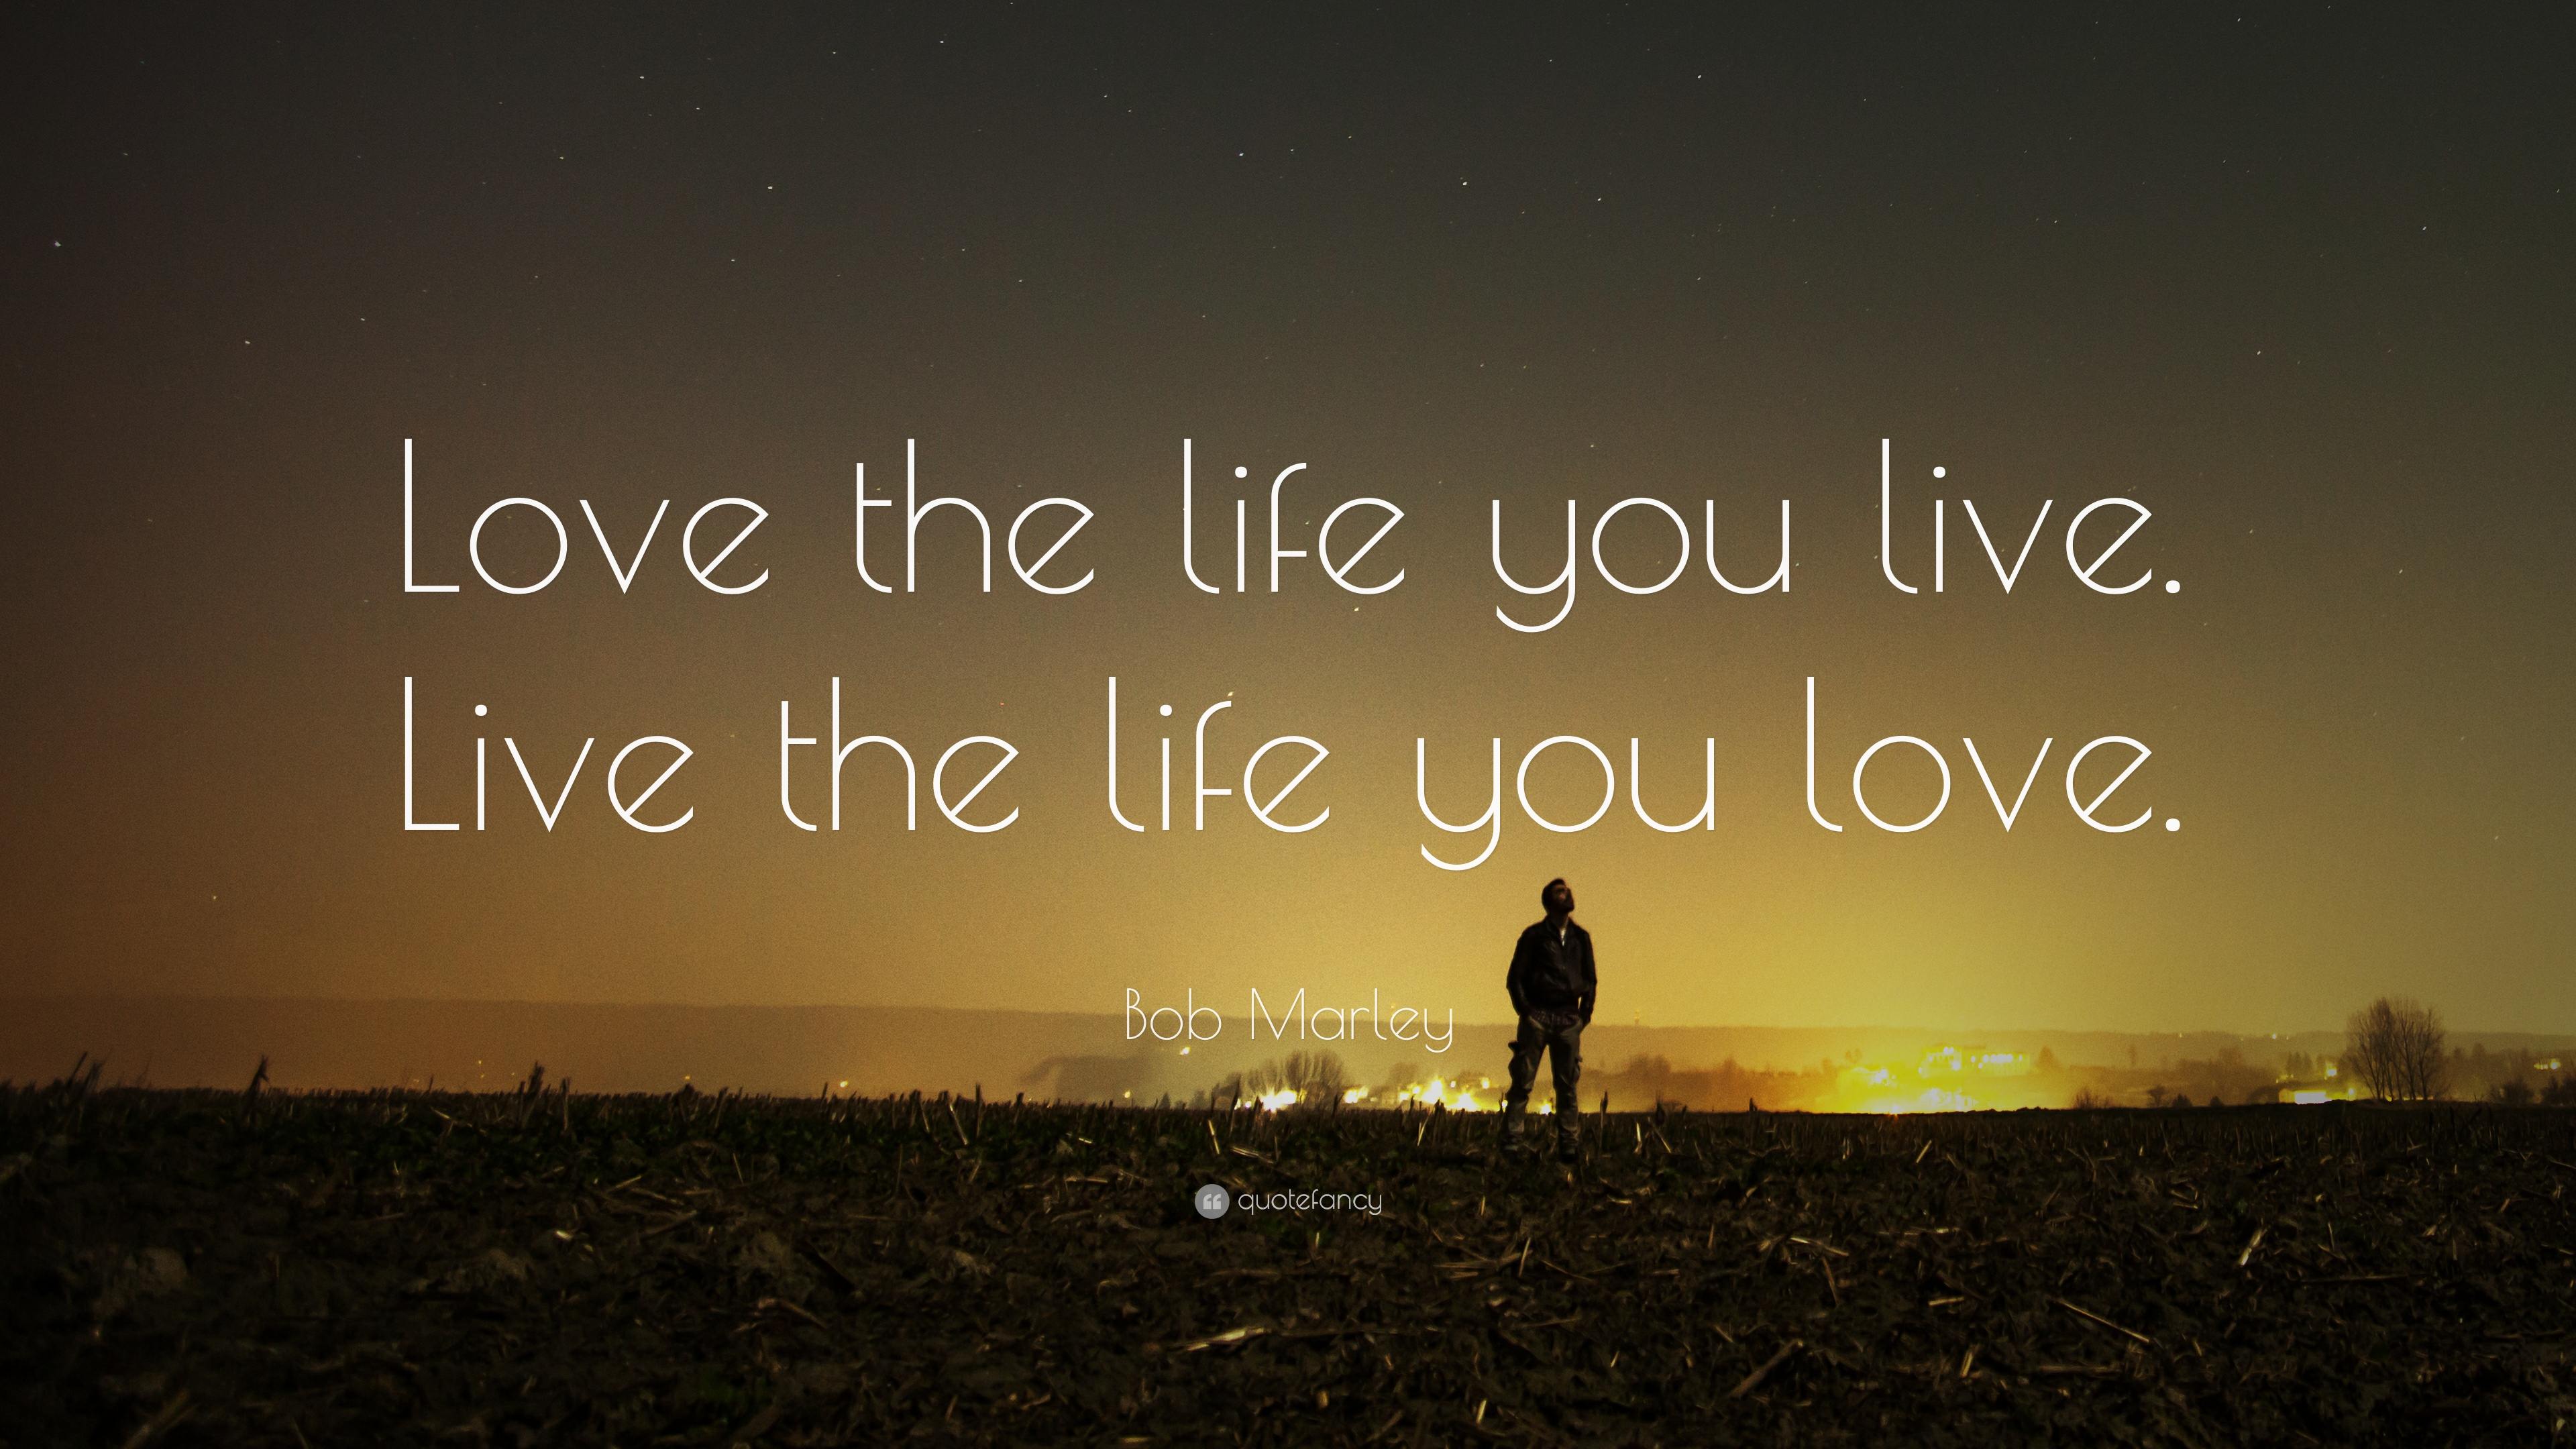 Bob Marley Quote - Love The Life You Live Quote - HD Wallpaper